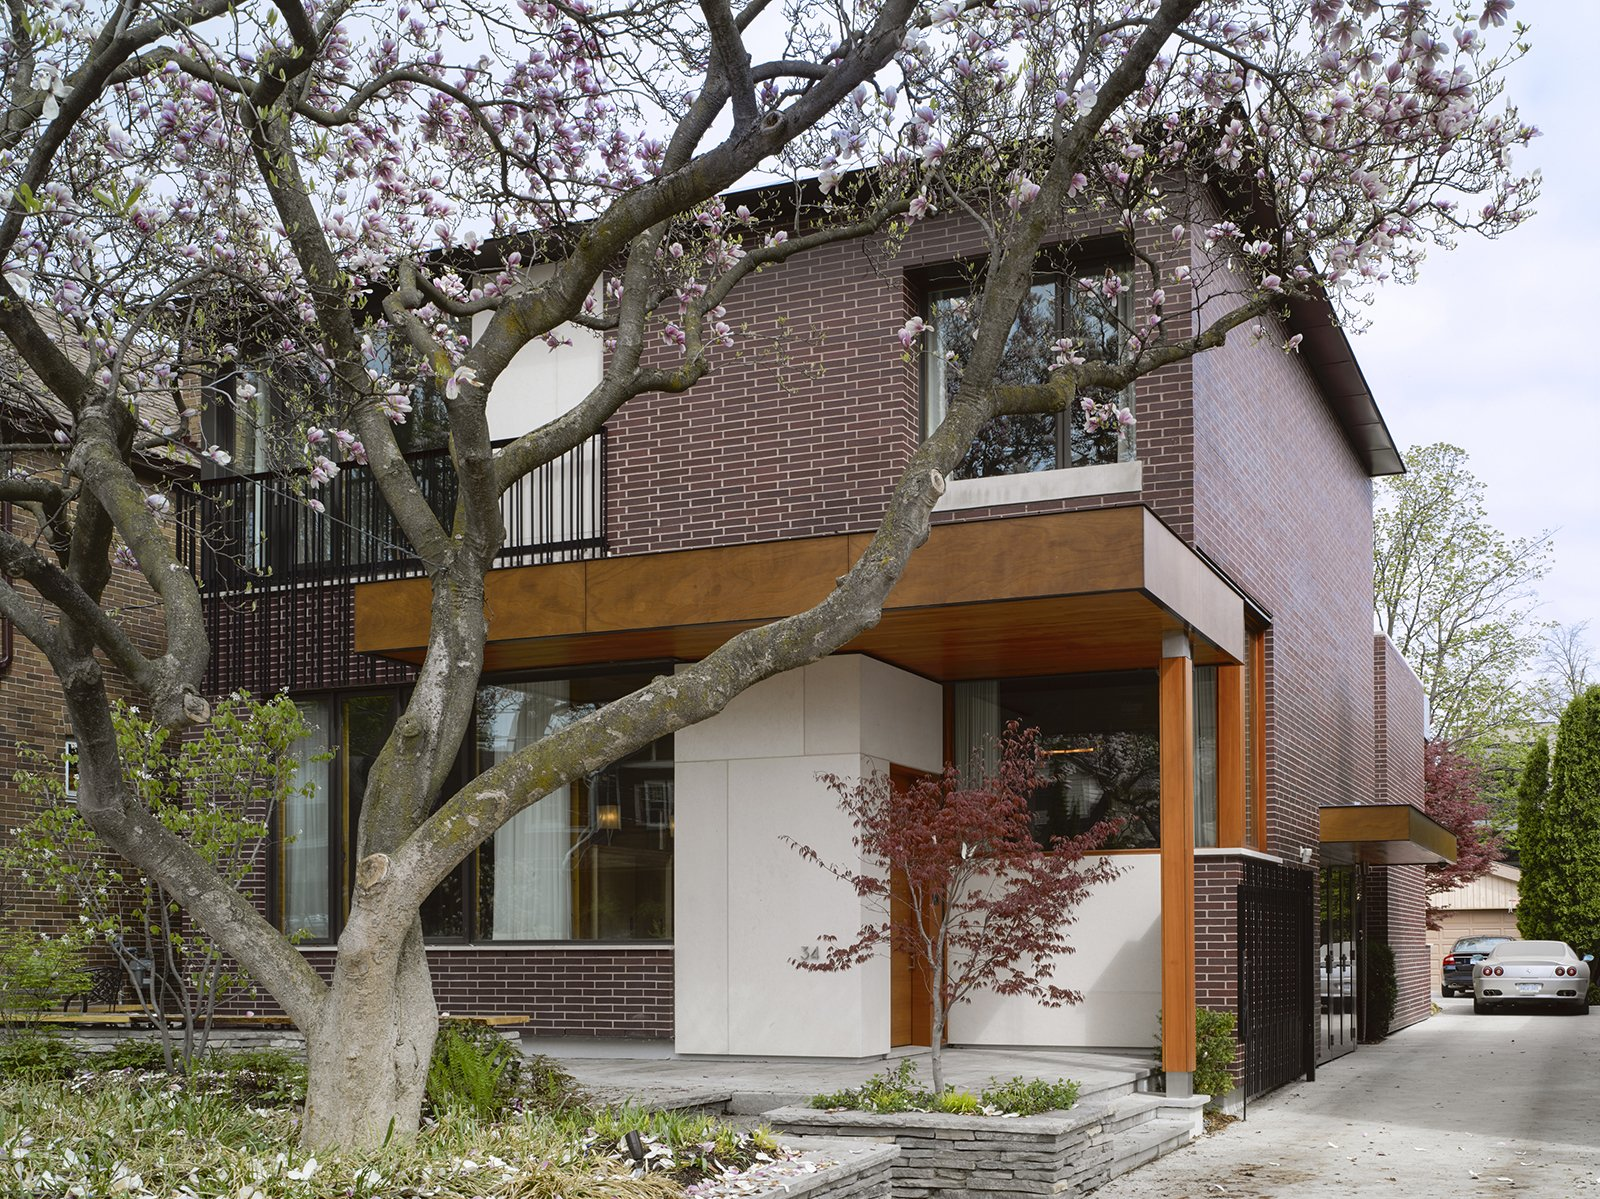 """The house responds to its site. """"The design was directly influenced by two mature, century-old magnolia trees in the front and a Japanese maple in the rear,"""" Tedesco says. """"The location of widows and main program spaces, such as the living room and master bedroom, were strategically placed to take full advantage of views of these trees. Because the trees are fully visible from the interior, seasons and the trees' yearly blooming cycles play a significant role in daily life—they're not just landscape elements. The window sizes and their locations were coordinated with the existing trees to take advantage of passive solar shading in the summer and solar gain in the winter months when the trees do not have foliage."""""""